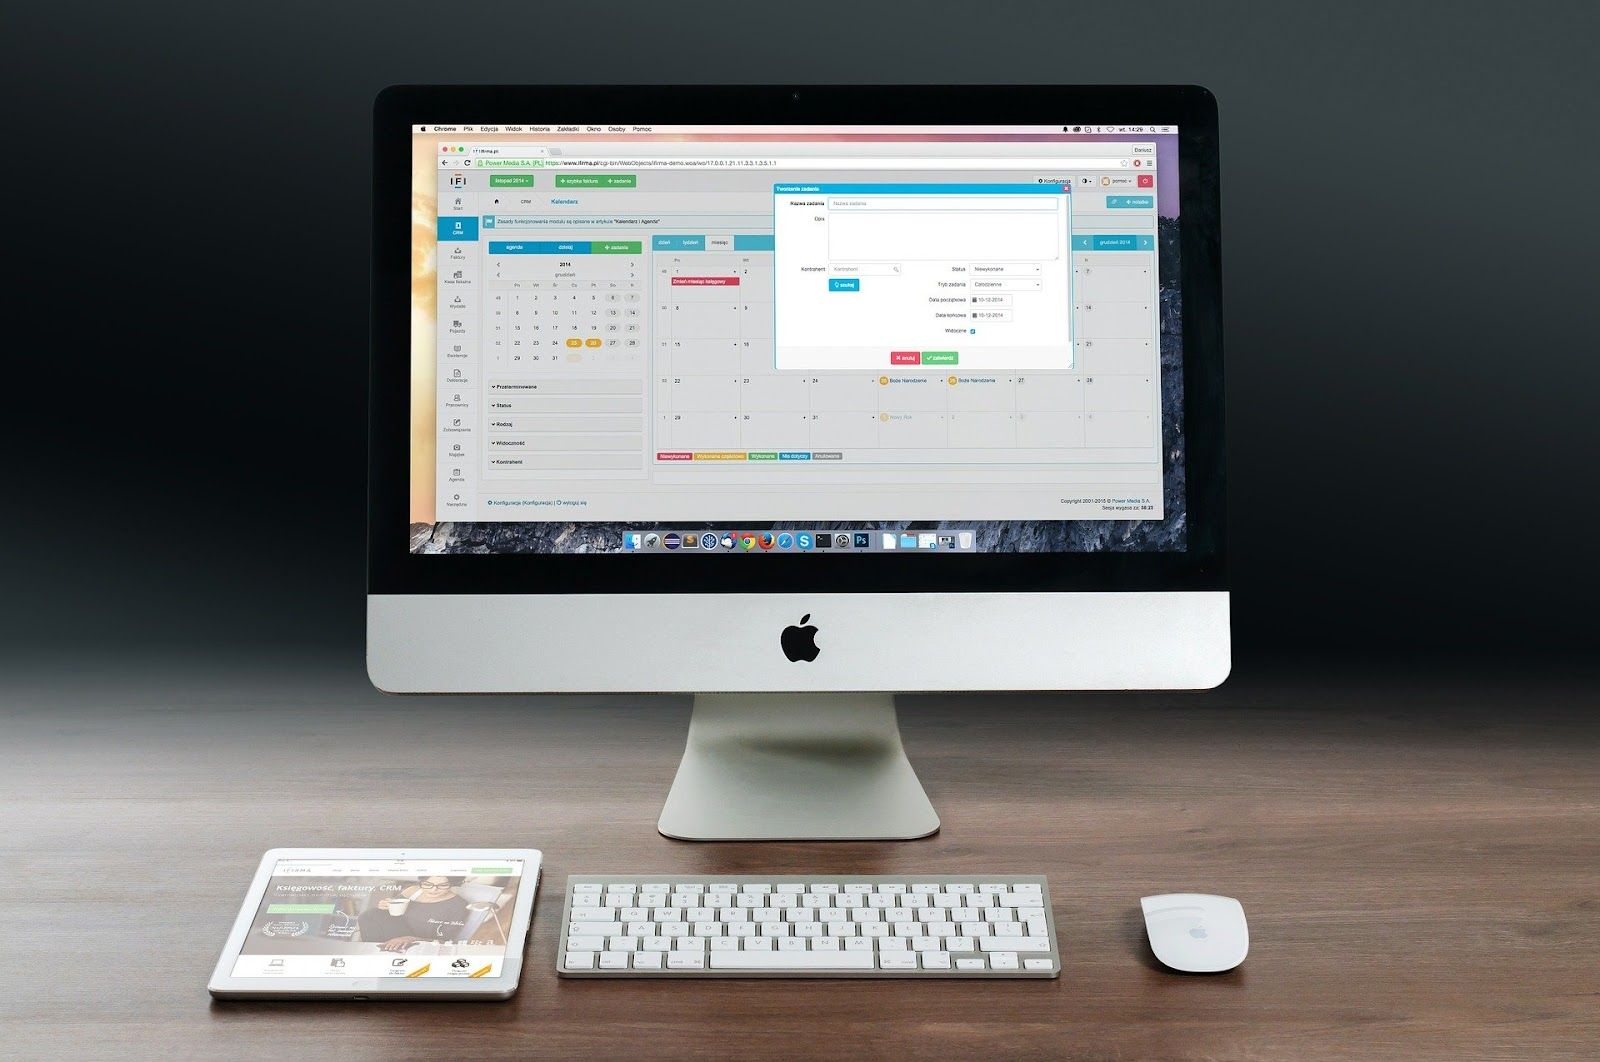 apple-imac-ipad-workplace-606761/why invest in technology